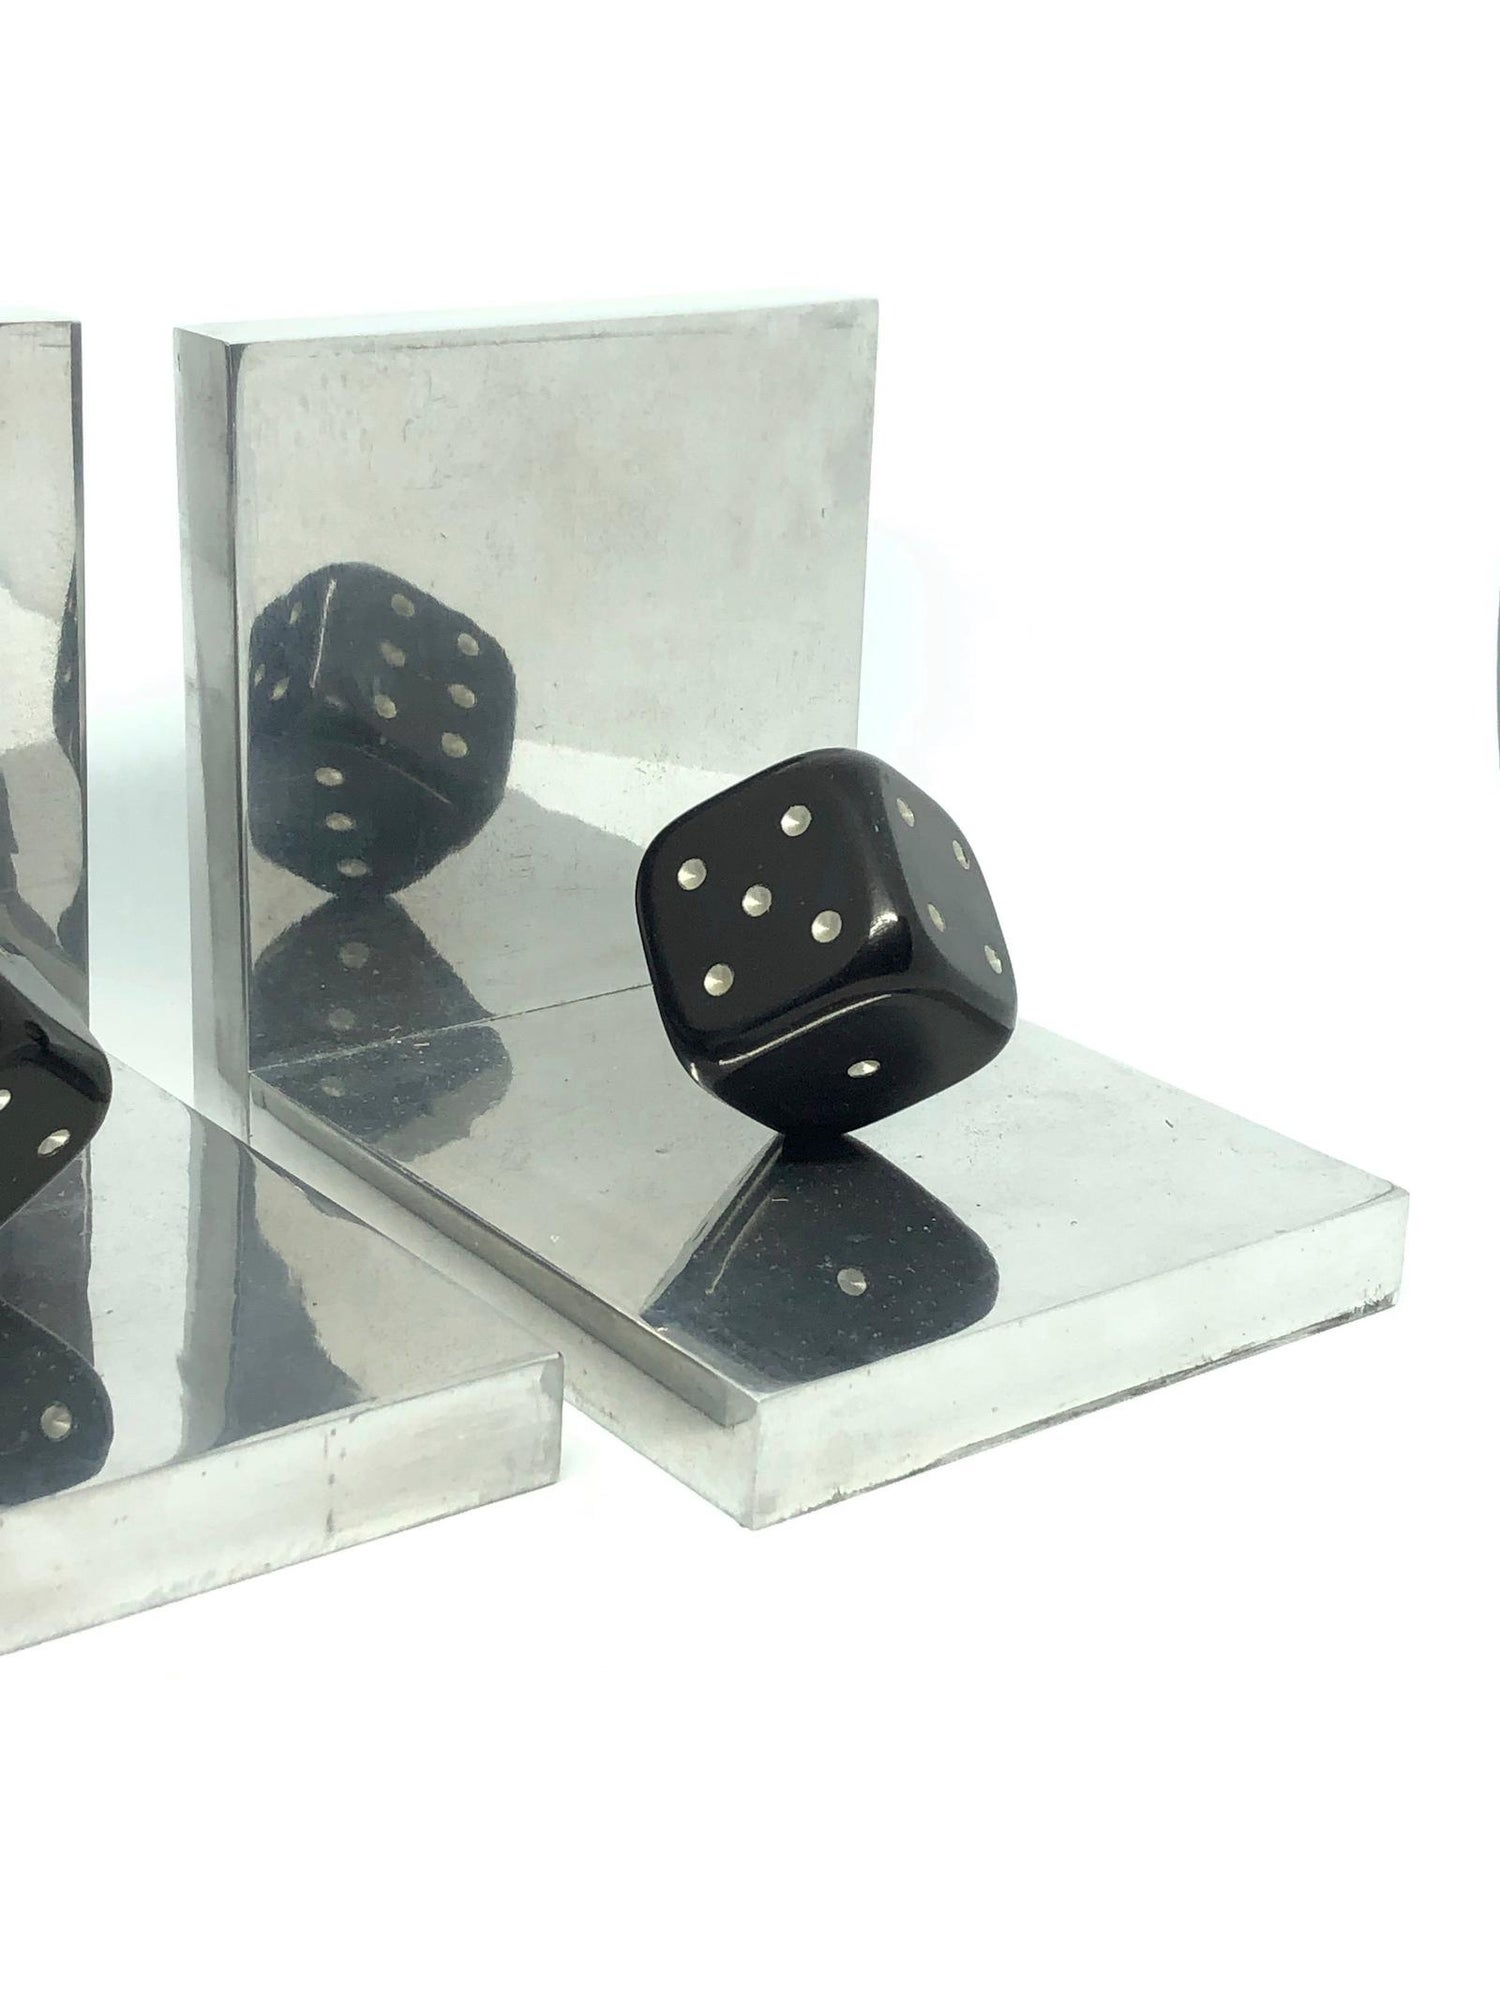 Pair of Art Deco Dice Bookends Black and Chrome Vintage German For Sale at  1stdibs